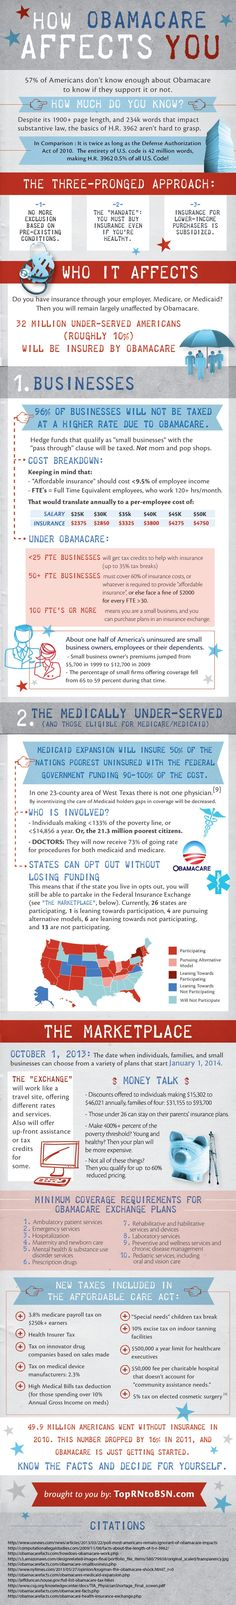 This graphic takes 1,000+ pages of health policy and digests into one picture…